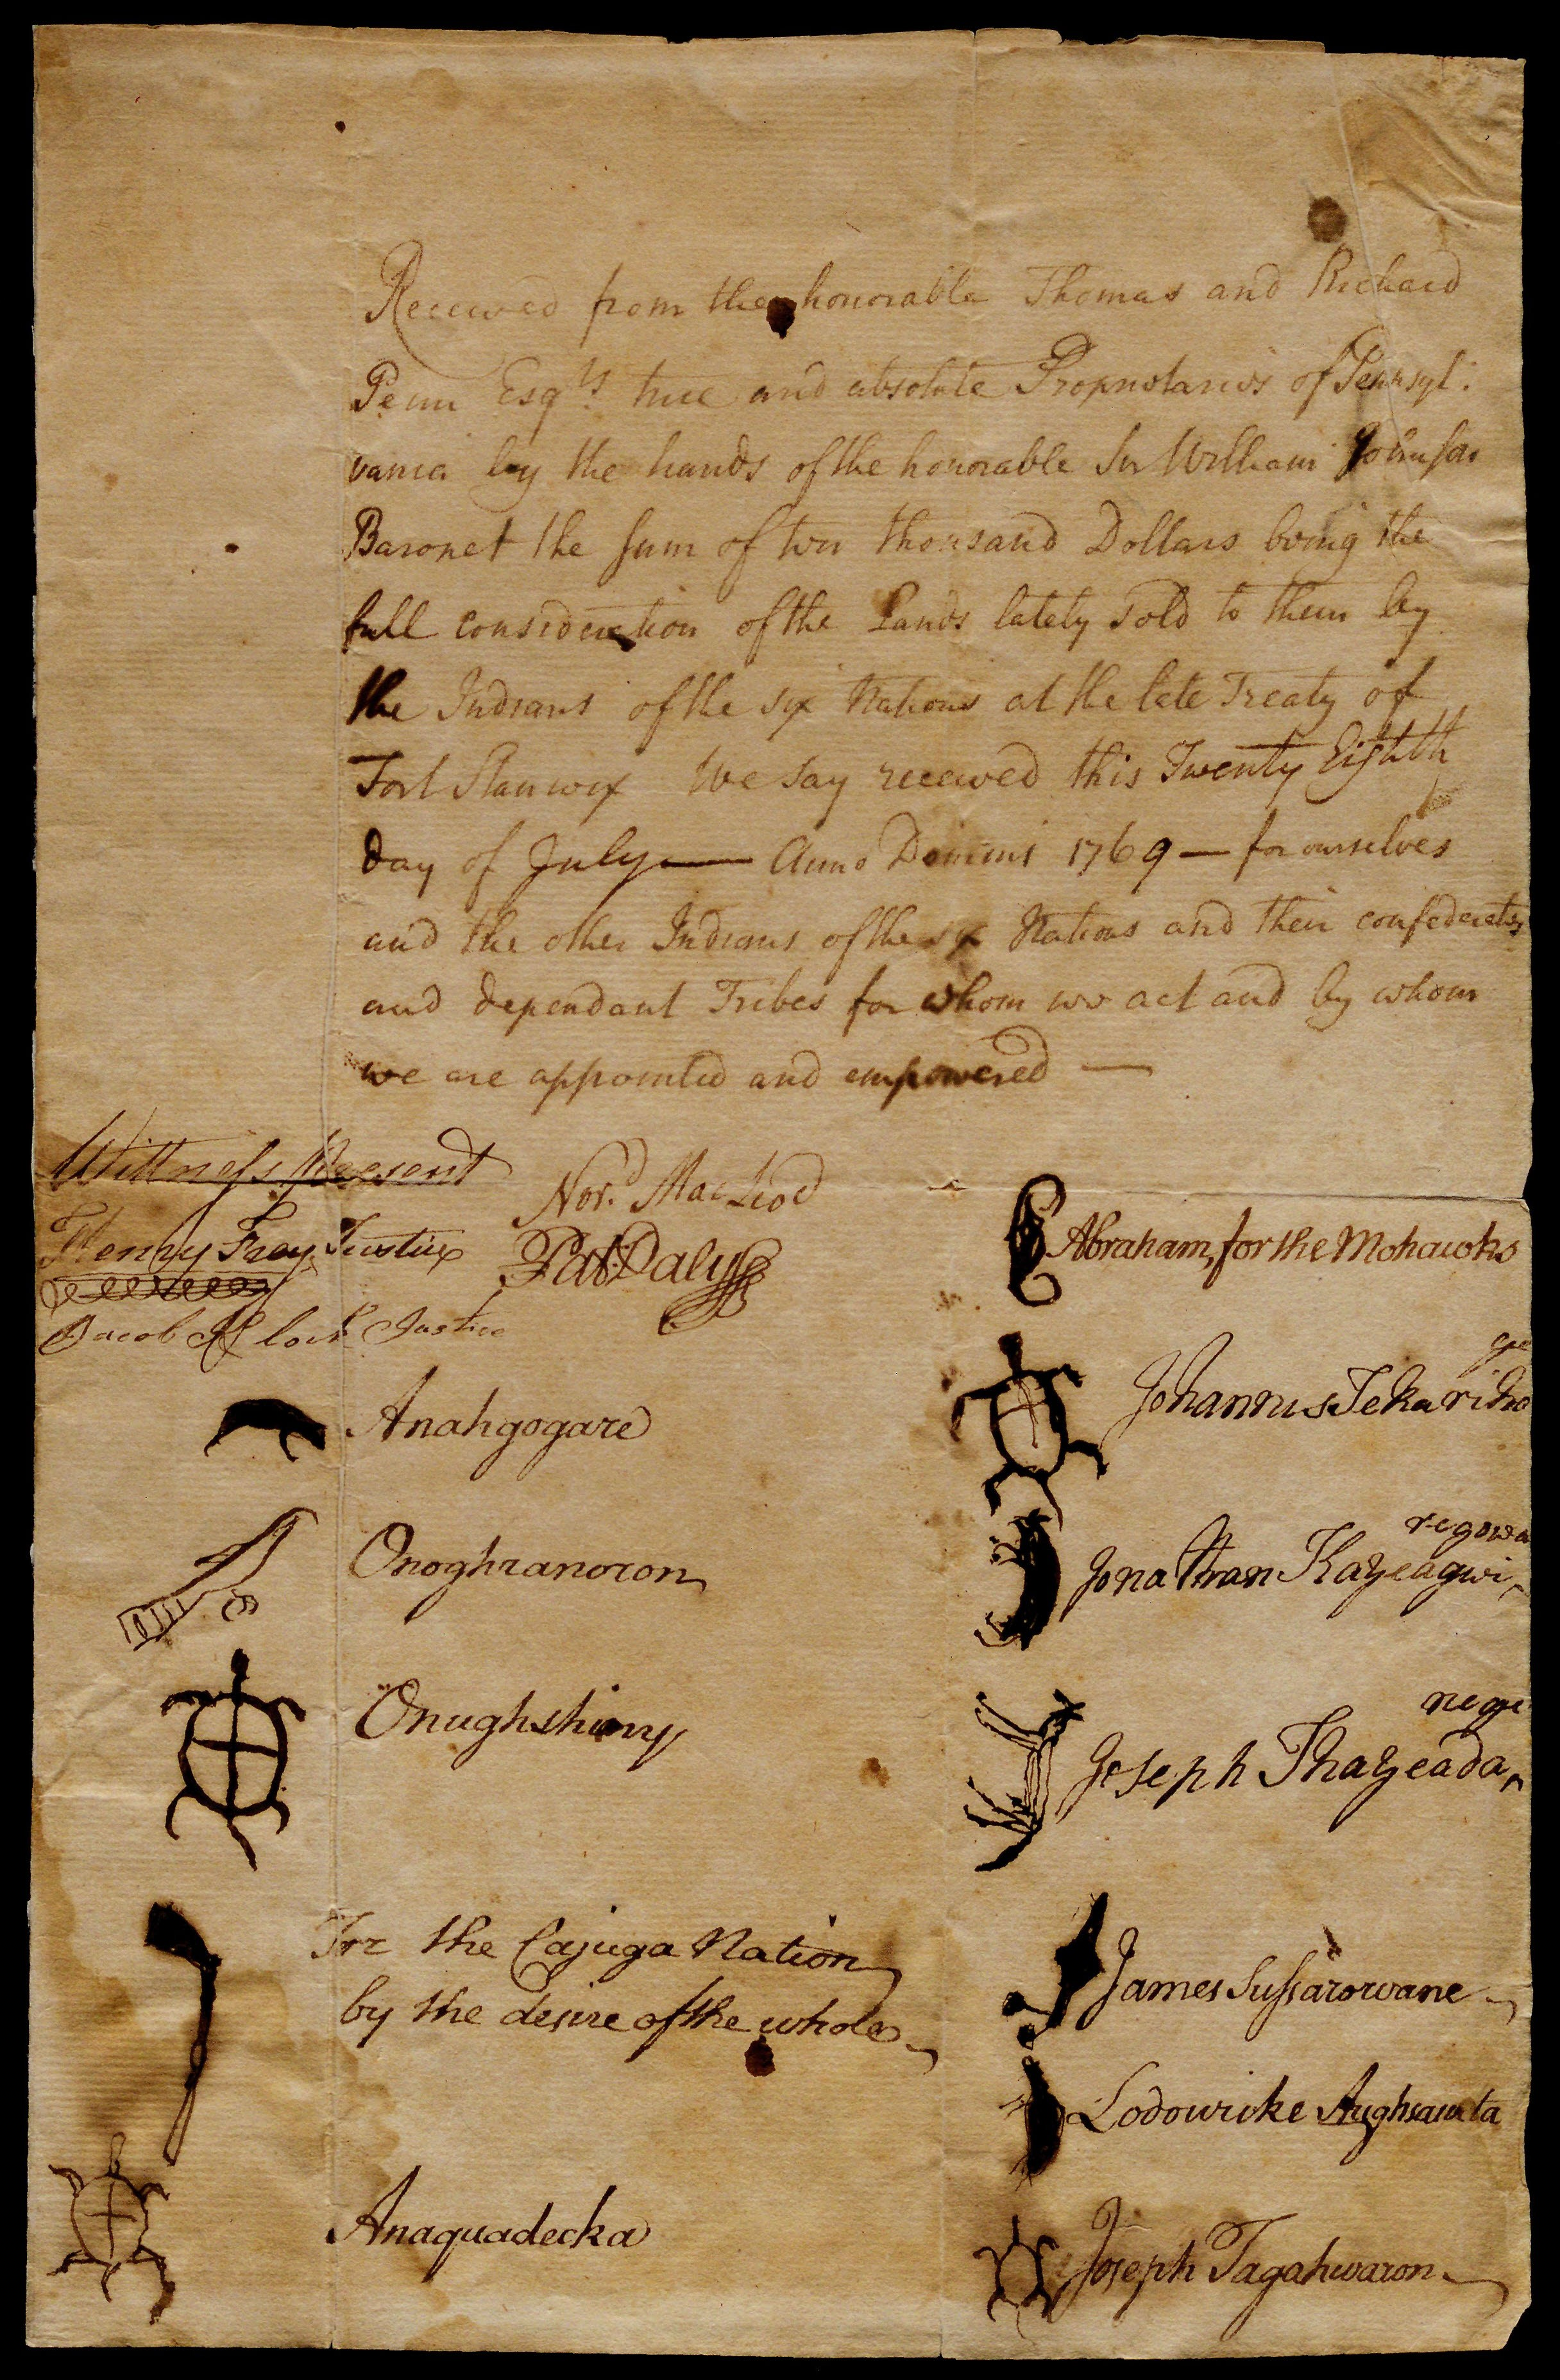 Receipt for payment for land ceded by the Six Nations, July 28, 1769. (Gilder Lehrman Collection)